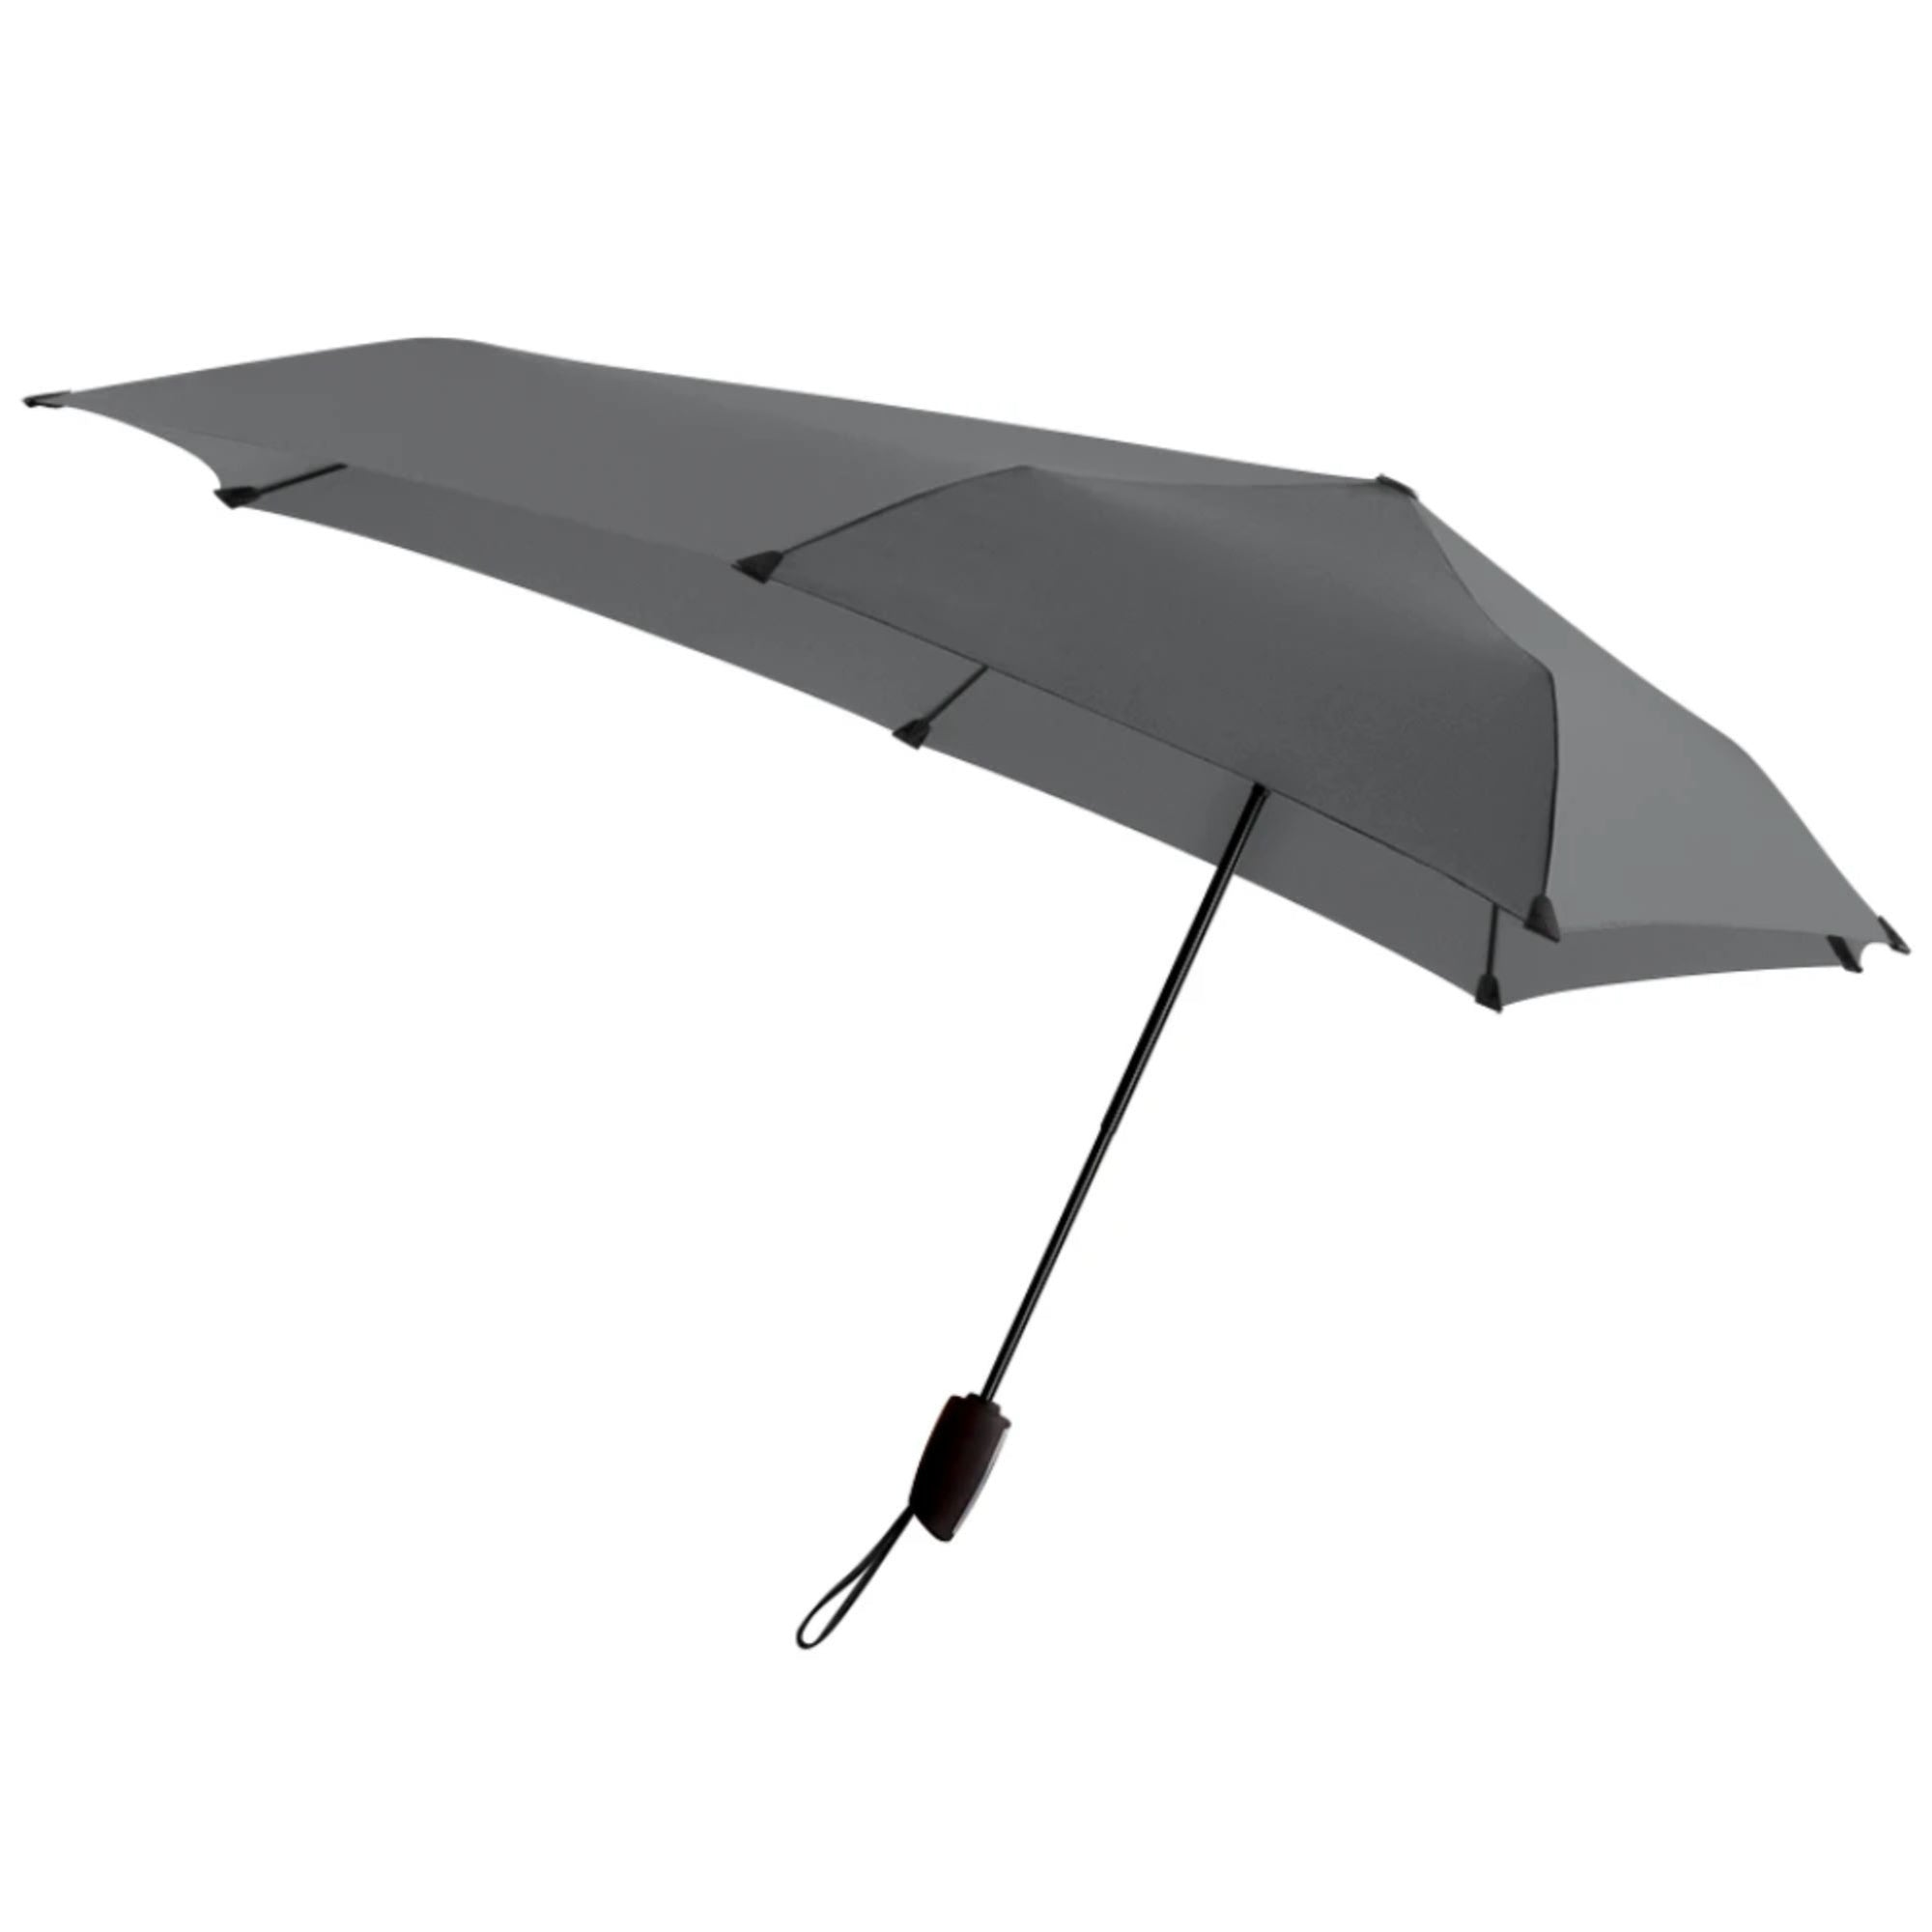 Senz° Automatic foldable umbrella, silk grey